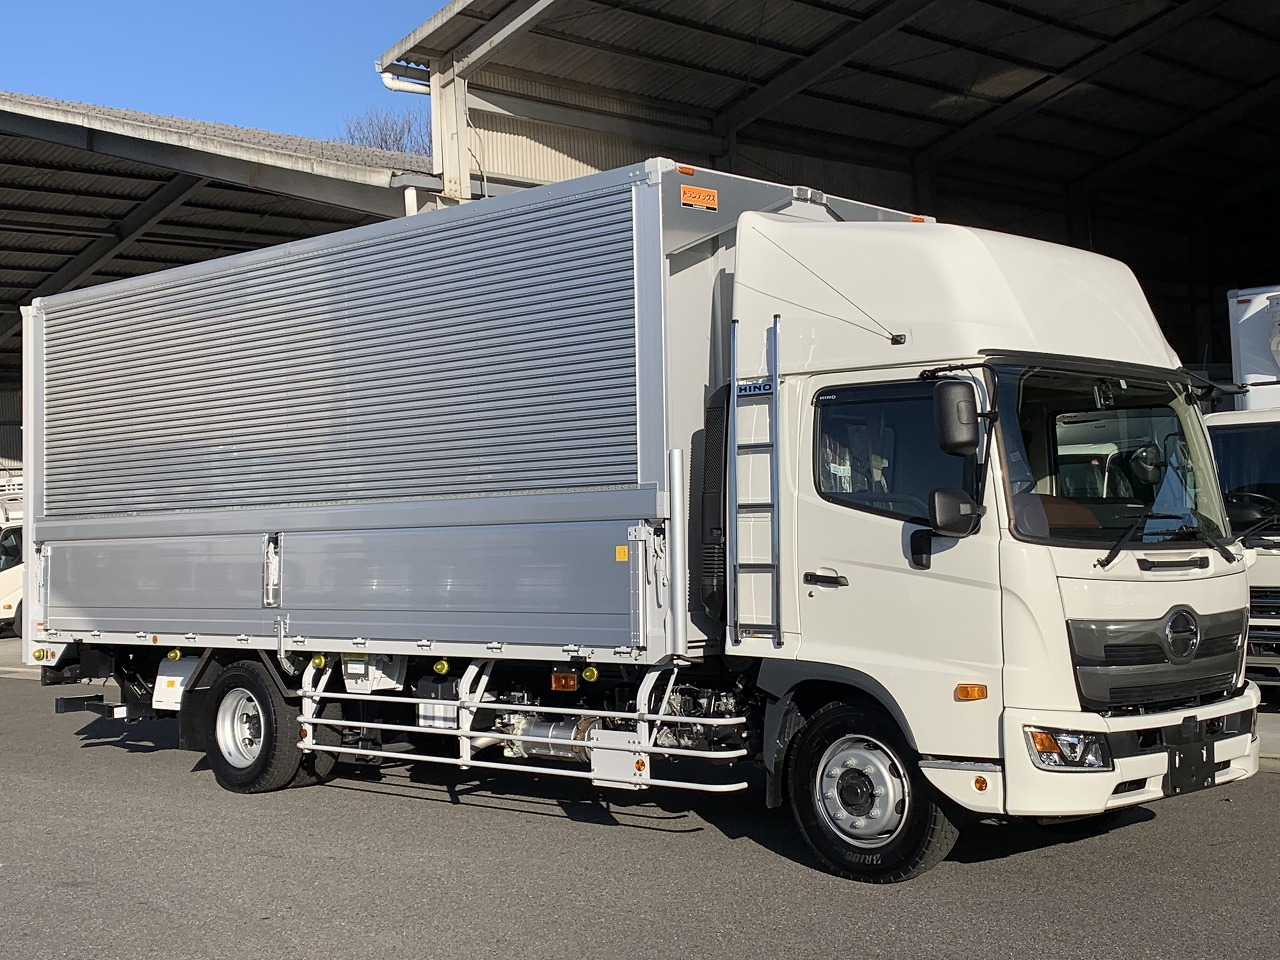 HINO Wing with P/G 2KG-FE2ABG